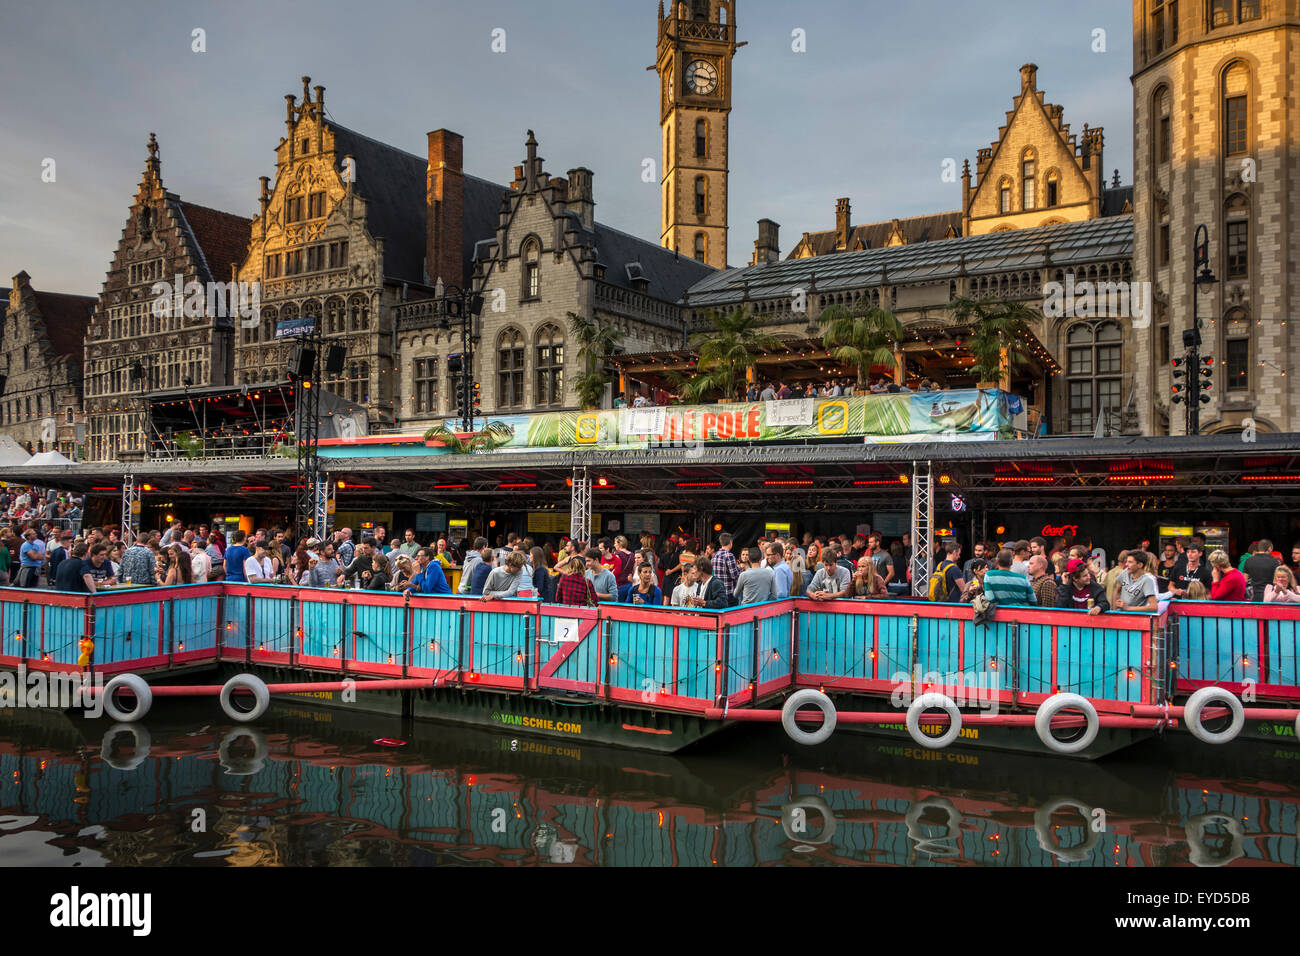 Visitors on grandstand watching the Polé Polé podium during the Gentse Feesten / Ghent Festival, summer - Stock Image